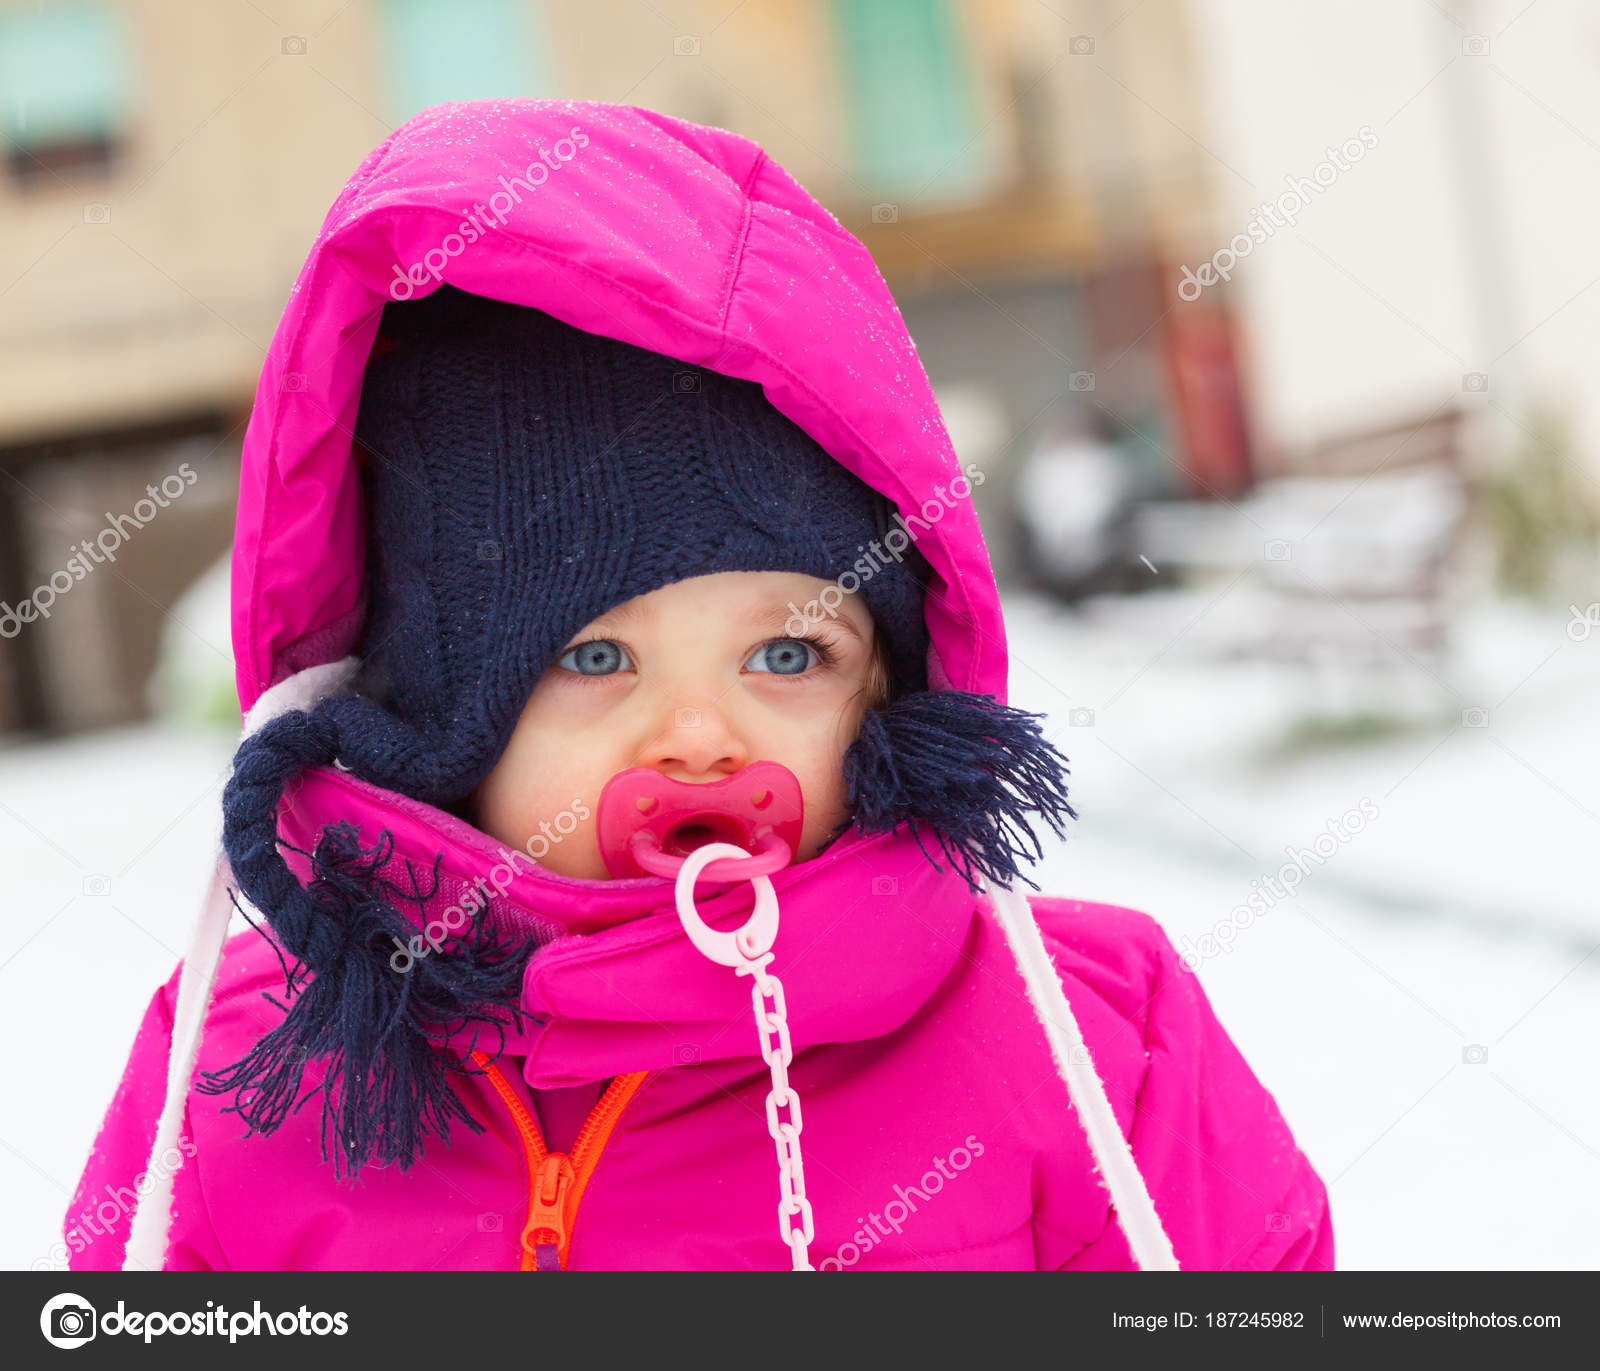 c415f0e4e Toddler baby girl in a magenta snow suit playing on the snow ...